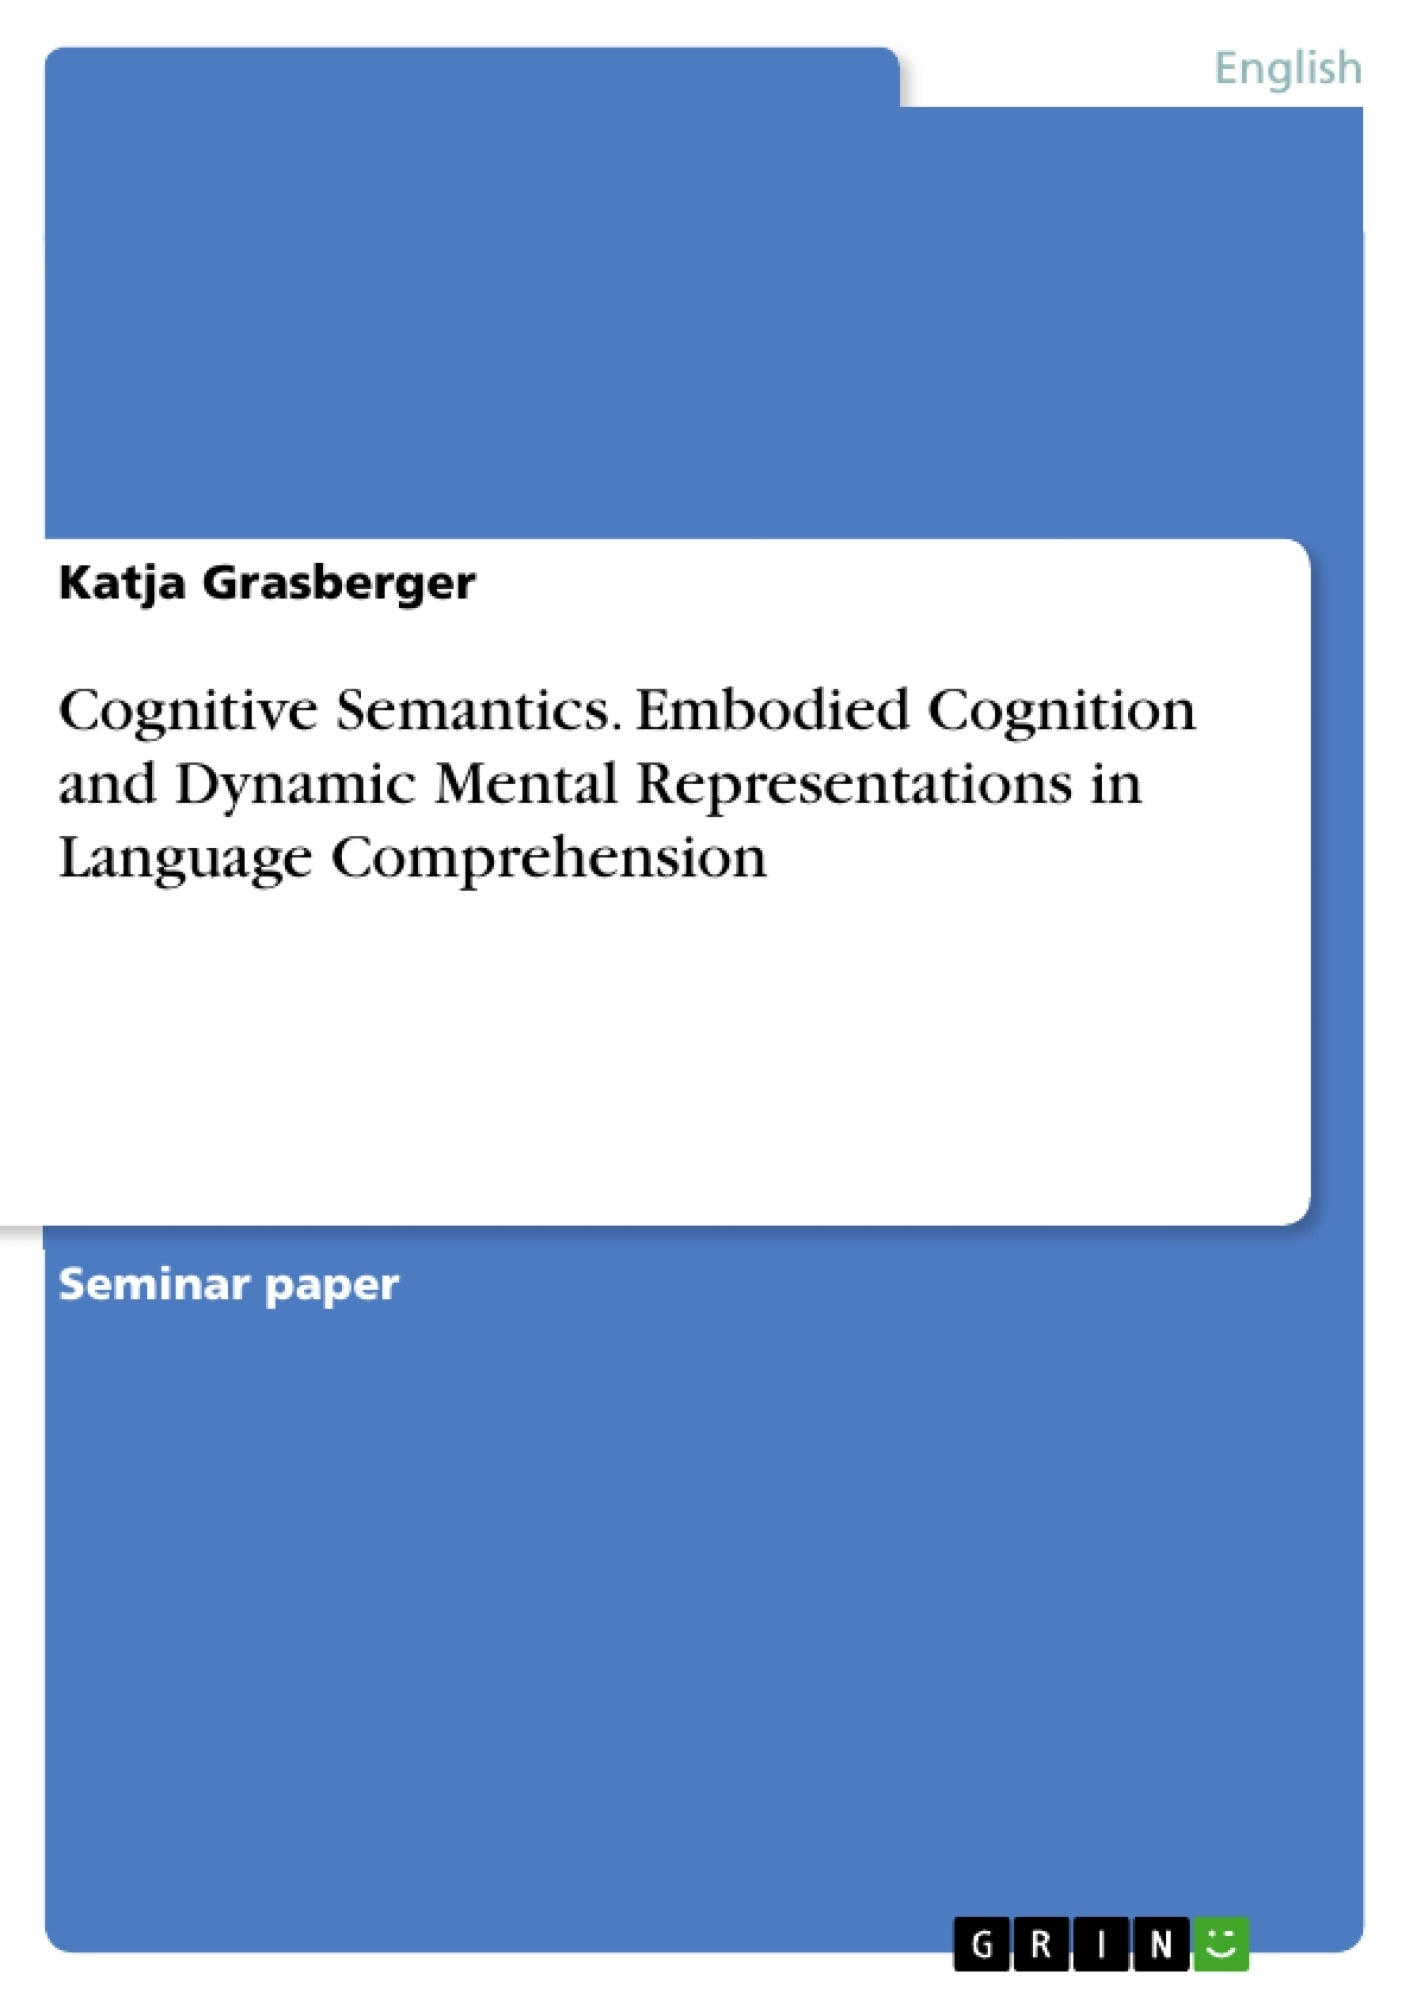 Title: Cognitive Semantics. Embodied Cognition and Dynamic Mental Representations in Language Comprehension